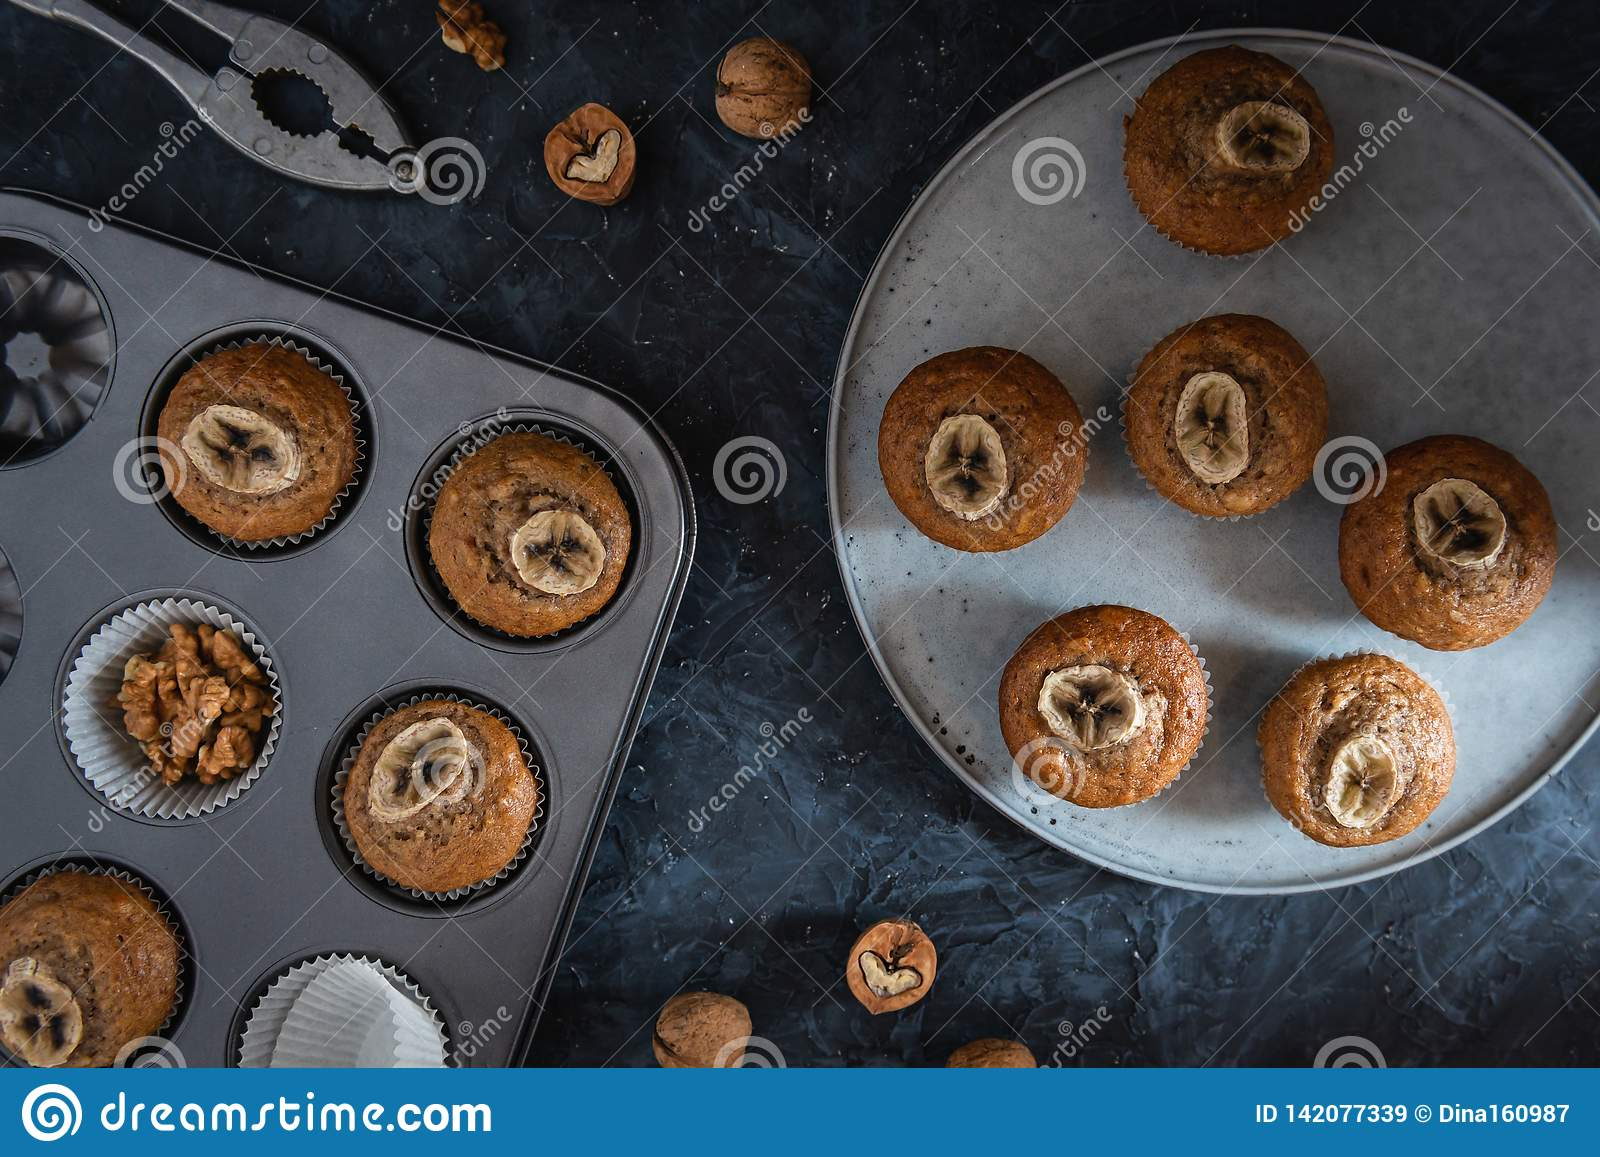 Healthy vegan banana muffins in a baking tray. Top view